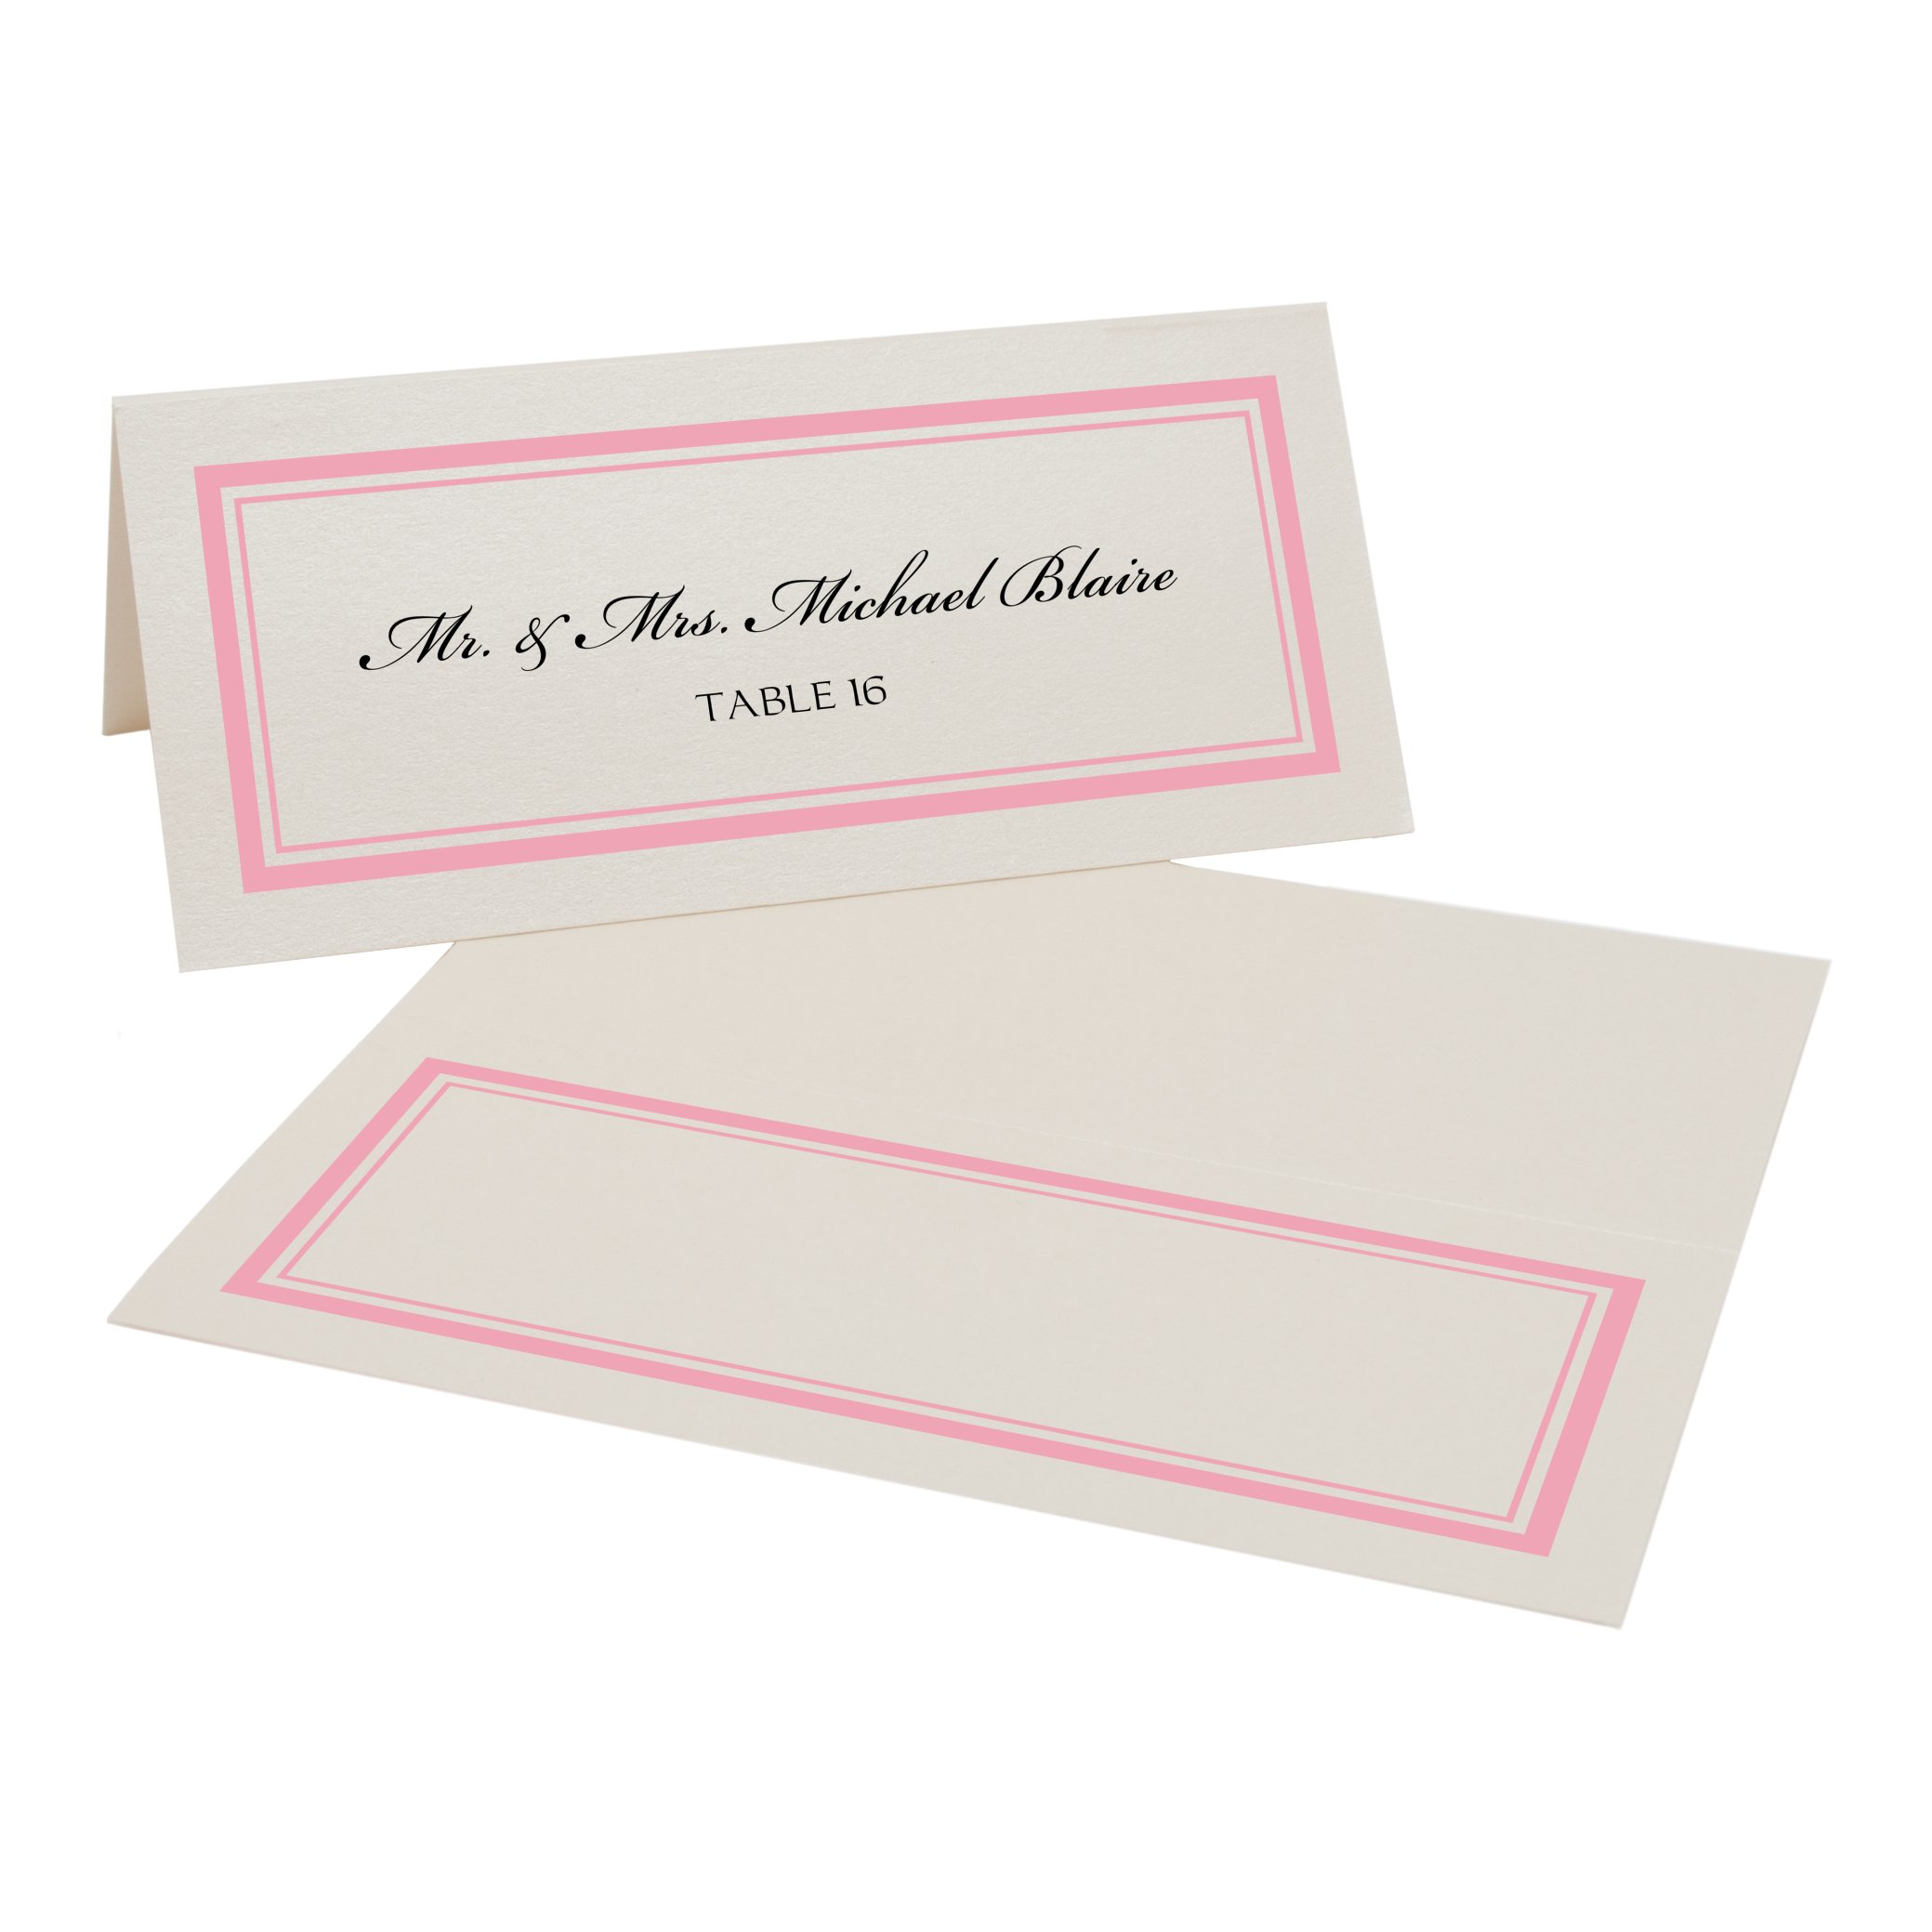 Double Line Border Place Cards, Champagne, Pink, Set of 375 by Documents and Designs